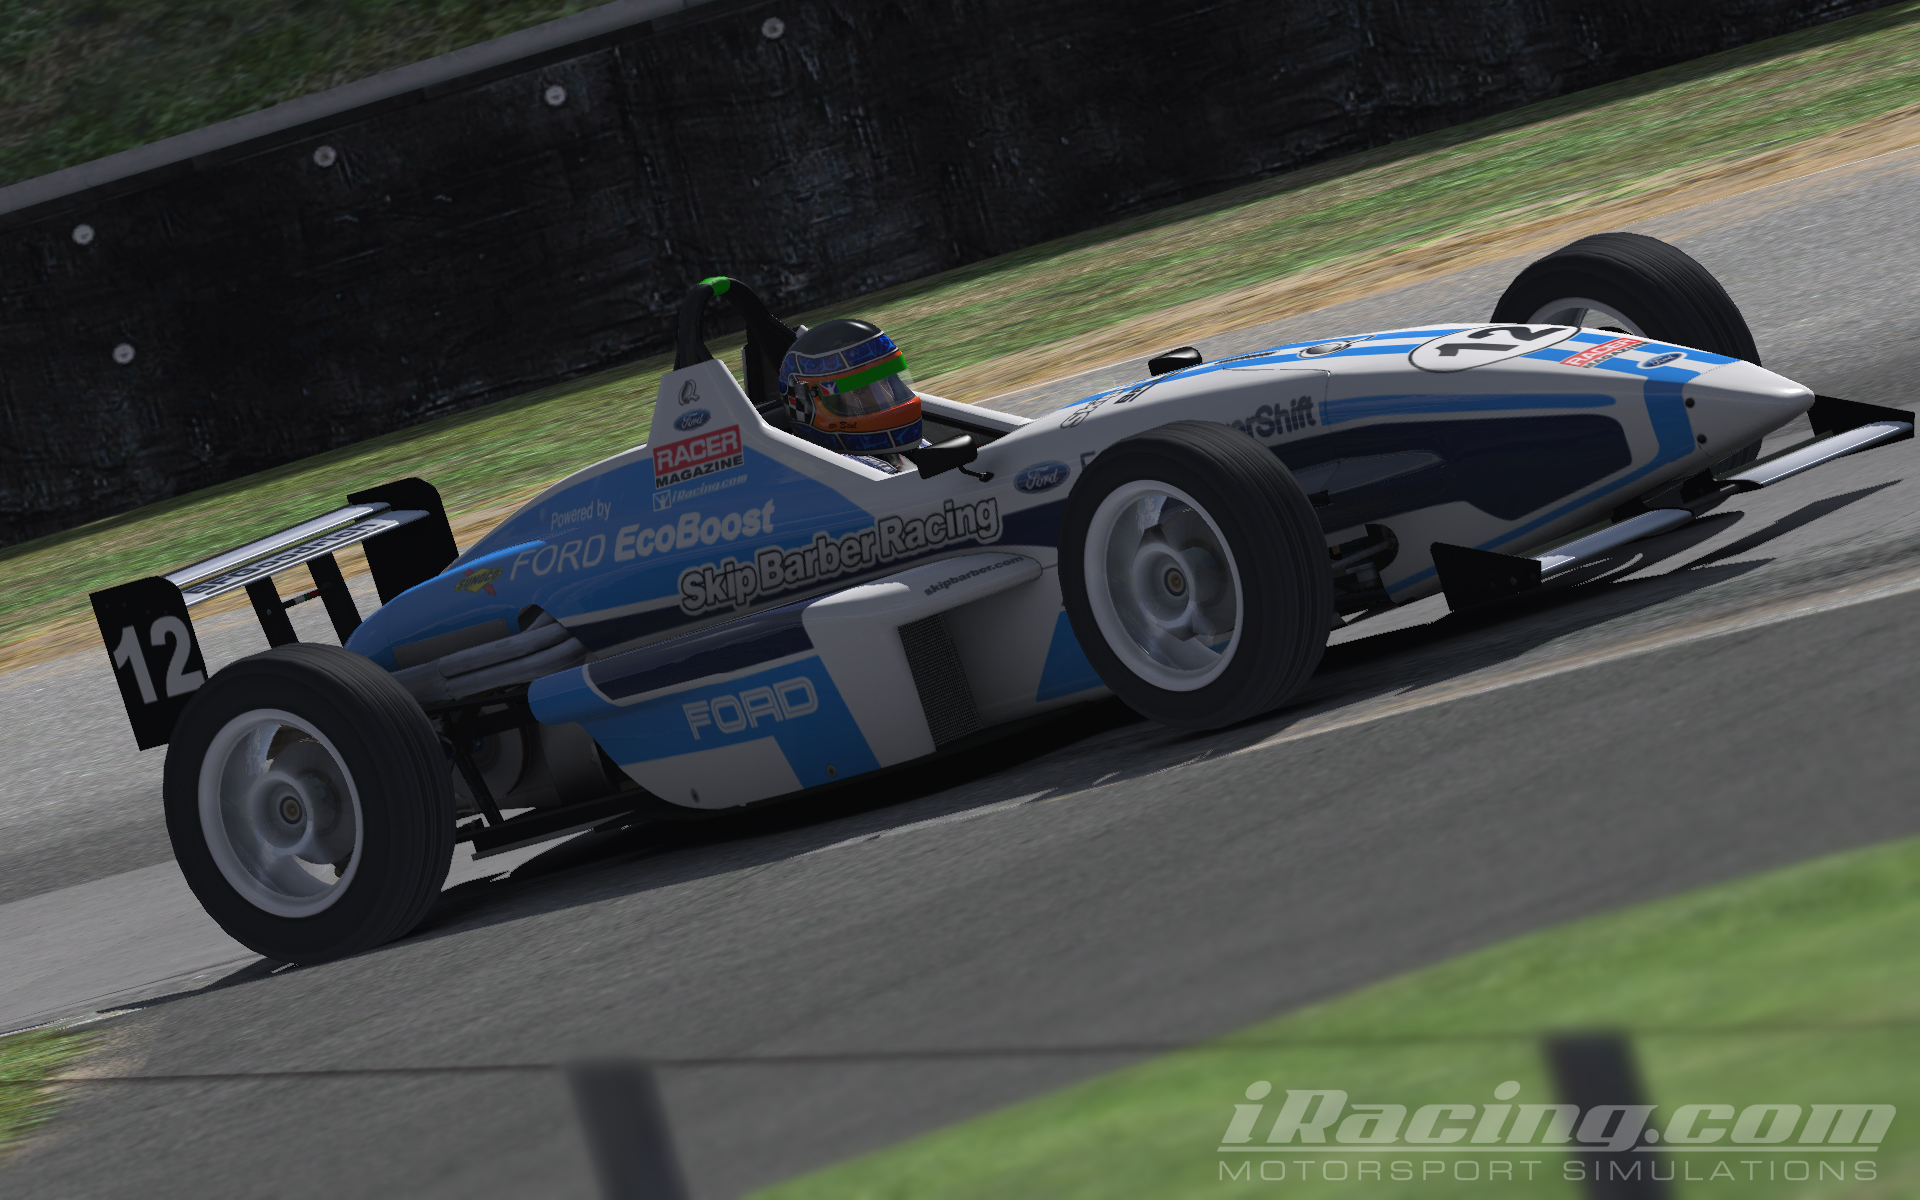 Ford Ecoboost Skip Barber by David ter Stal Trading Paints